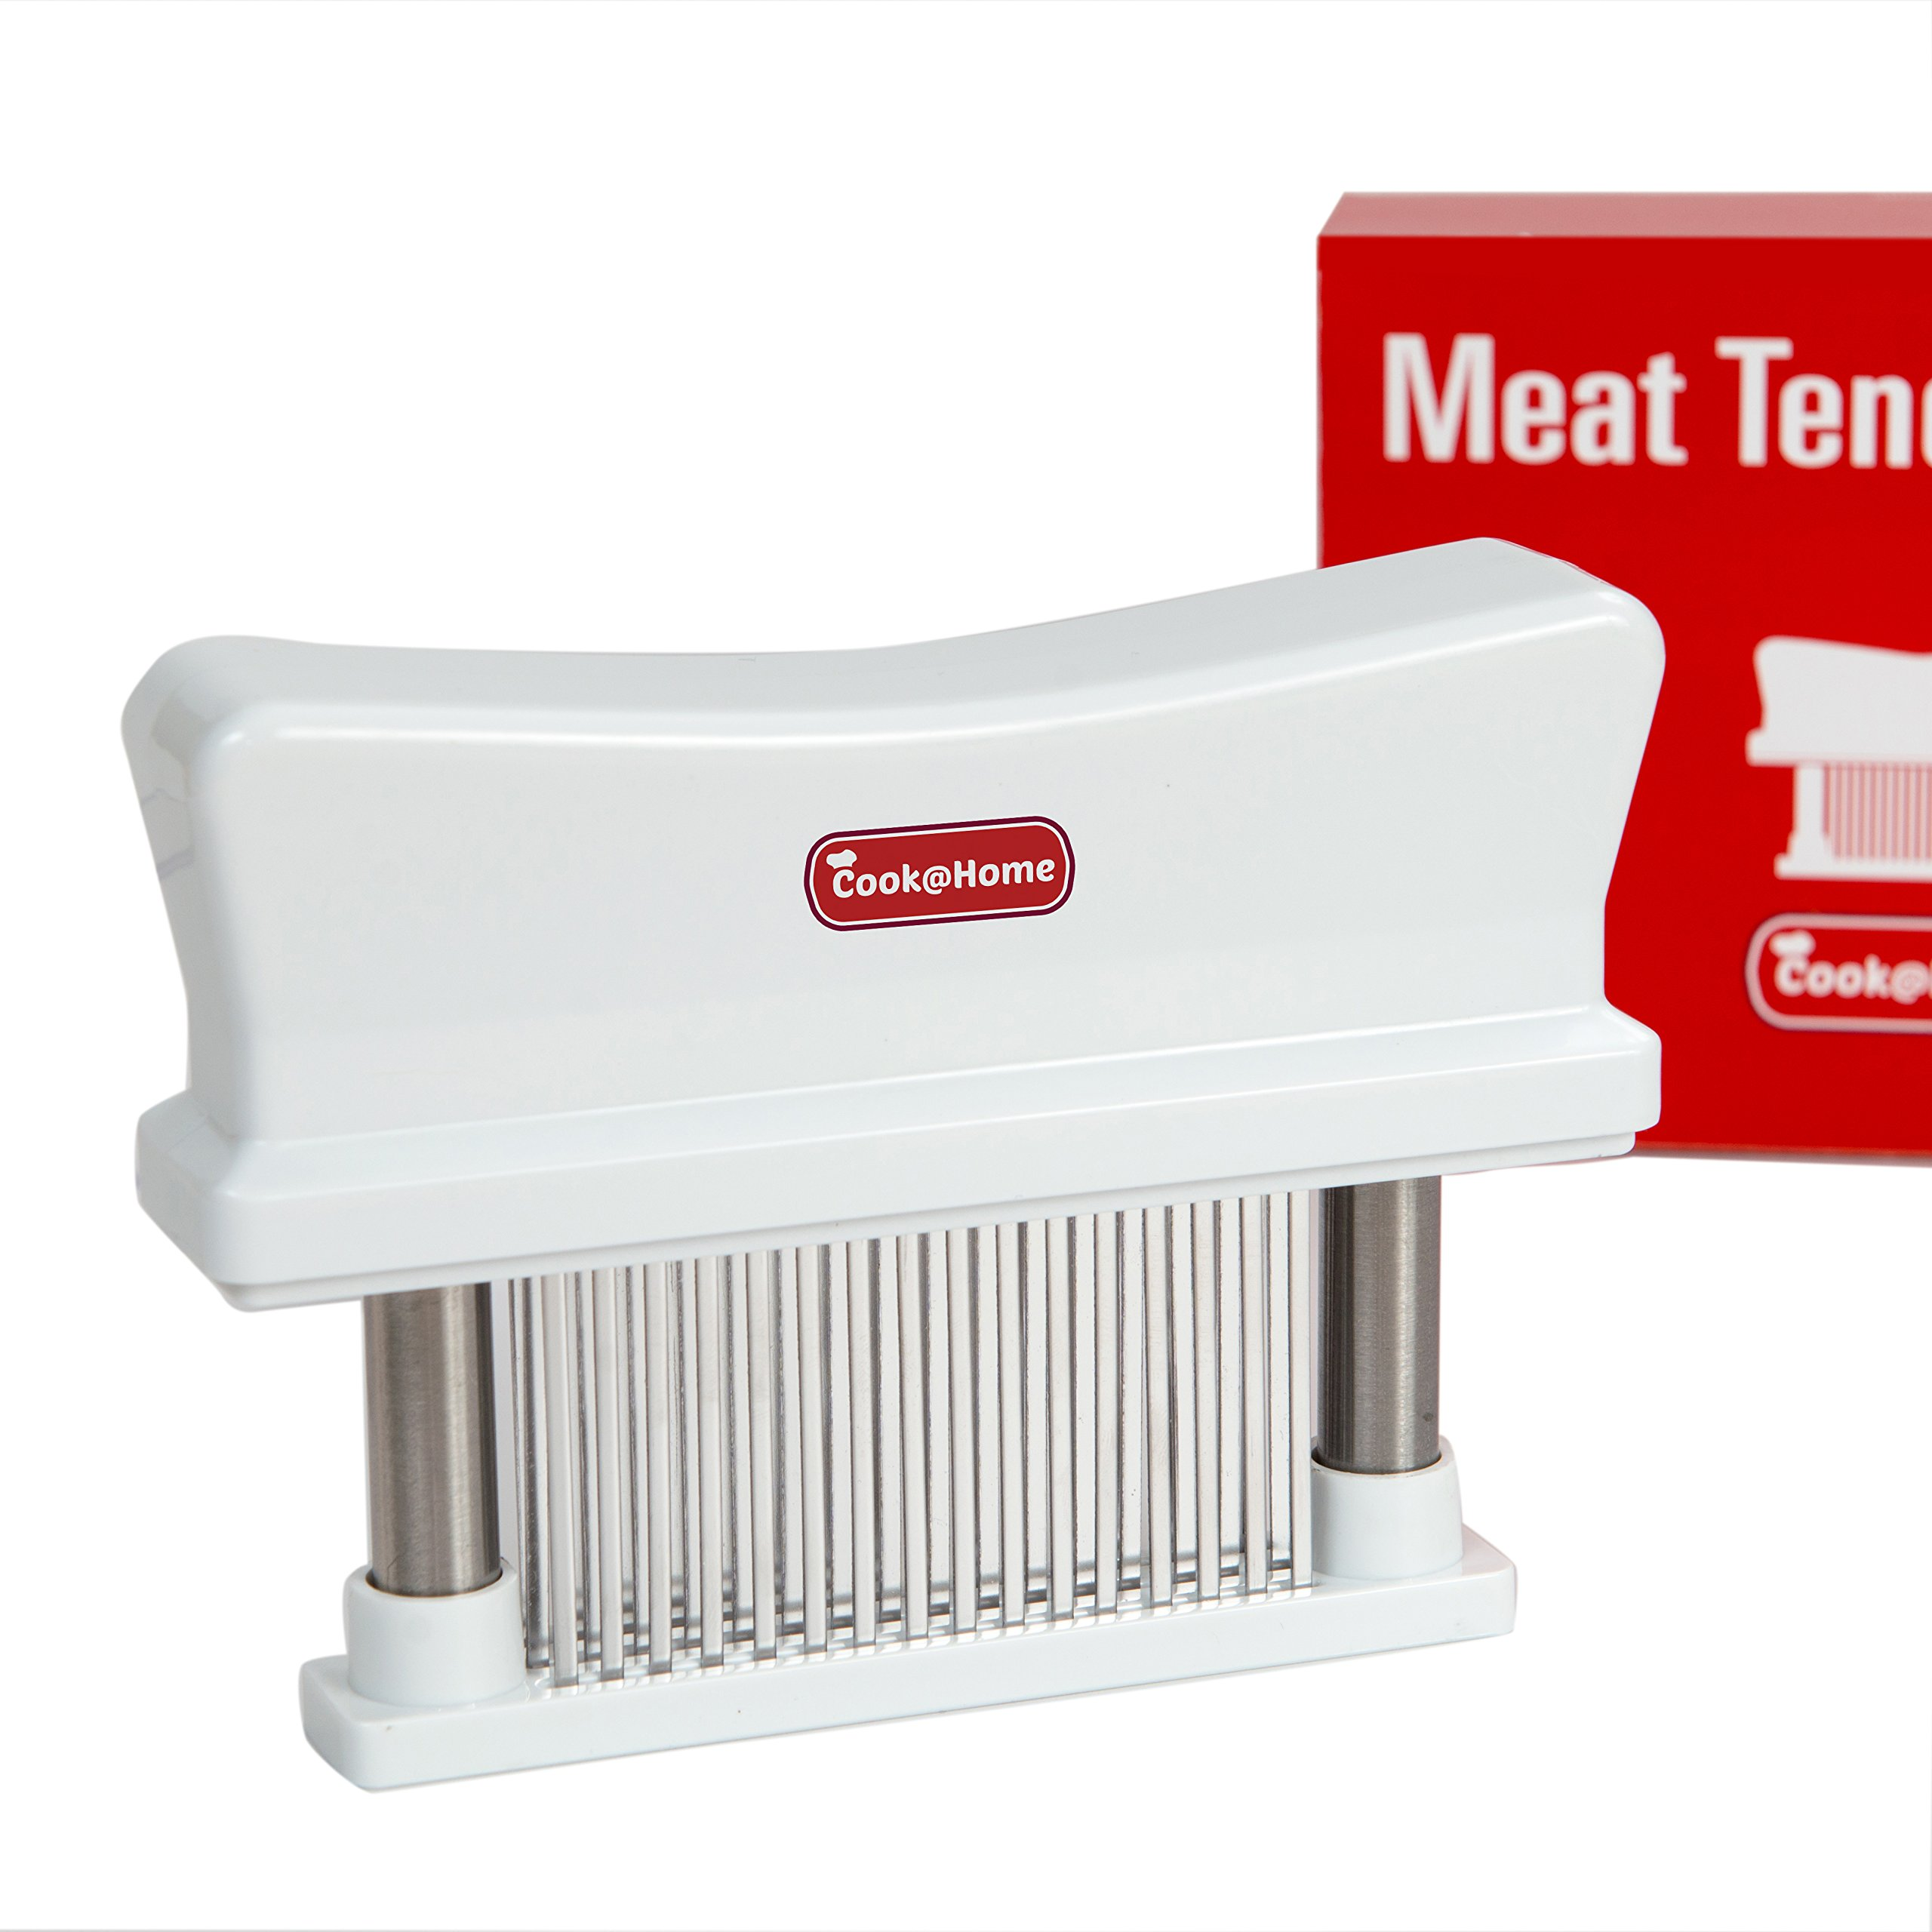 Meat Tenderizer Tool From Cook@home: Turn Every Meat Cut to Sensational Juicy Steak.